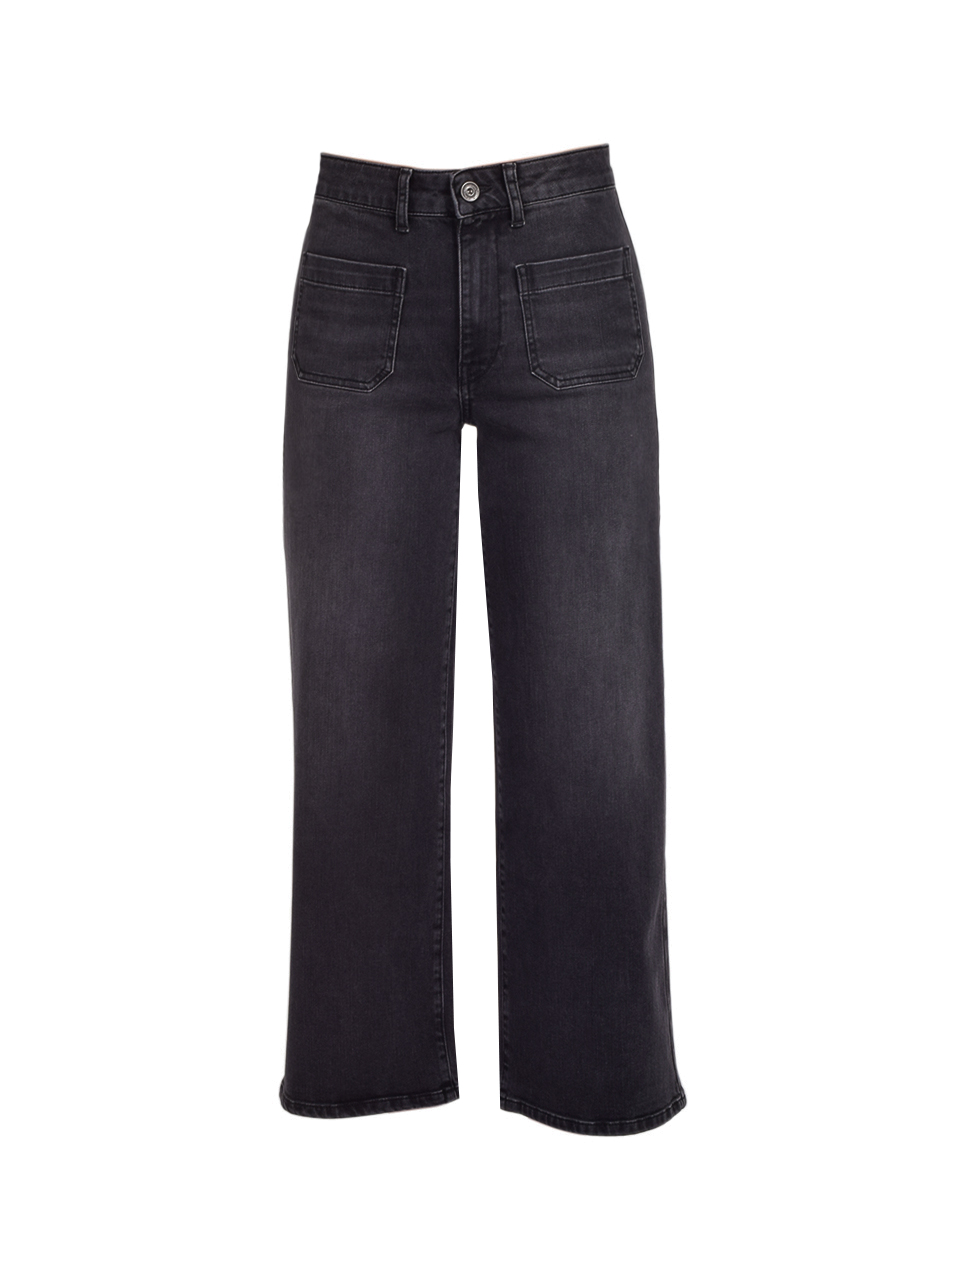 Ottod'Ame Cropped French Jeans in Black Product Shot